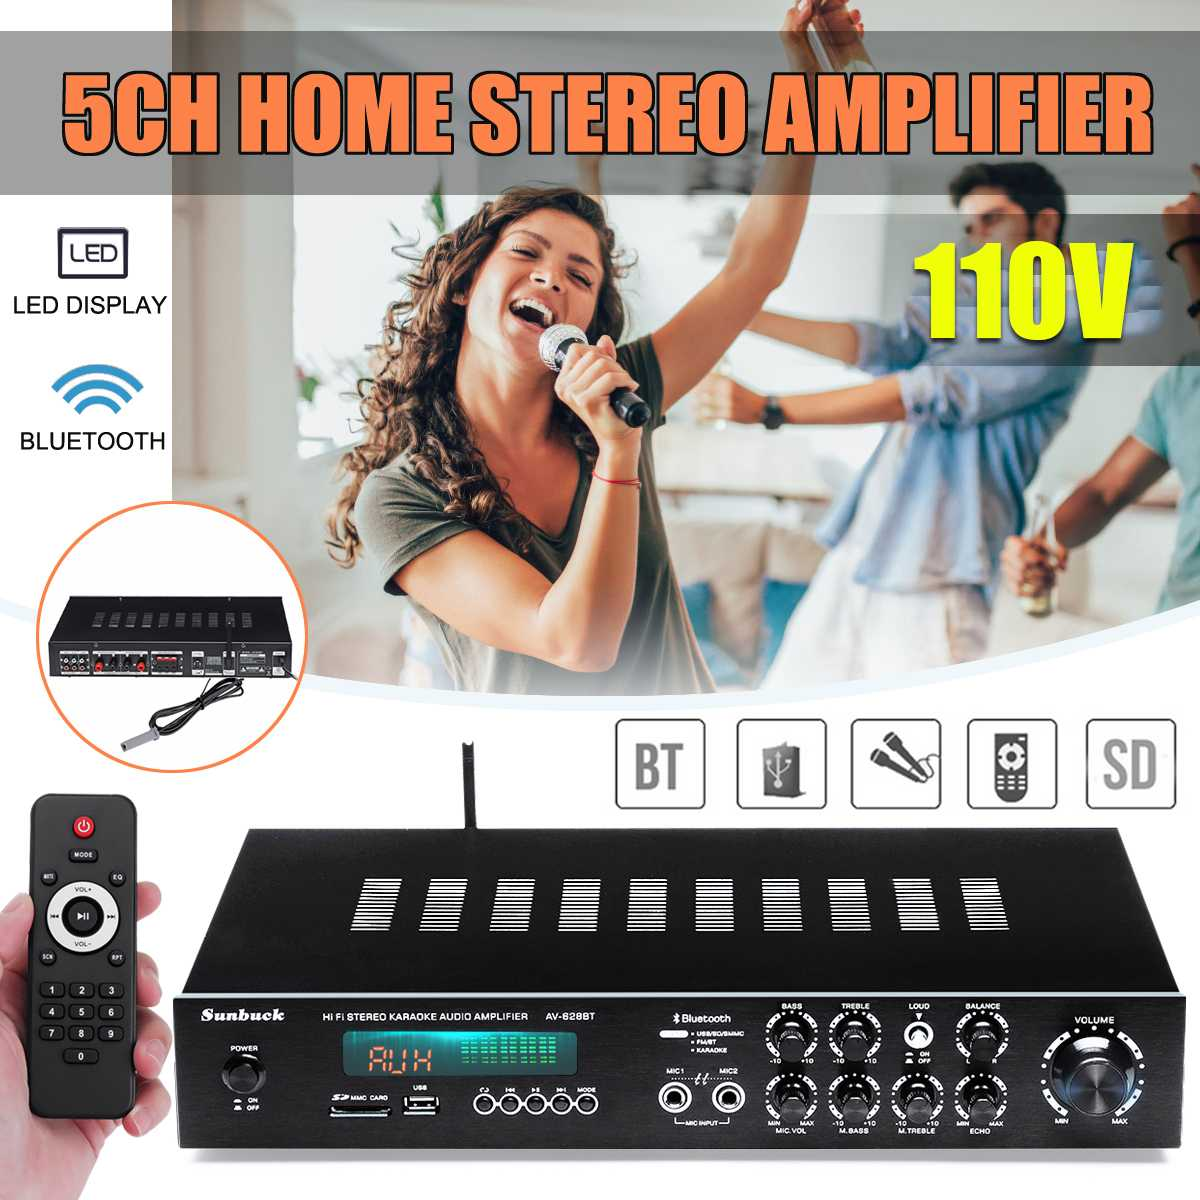 5 Channel Aluminum Alloy Home Amplifier Subwoofer LED Display for Hi-fi bluetooth Speaker Support Remote Control FM Radio USB5 Channel Aluminum Alloy Home Amplifier Subwoofer LED Display for Hi-fi bluetooth Speaker Support Remote Control FM Radio USB